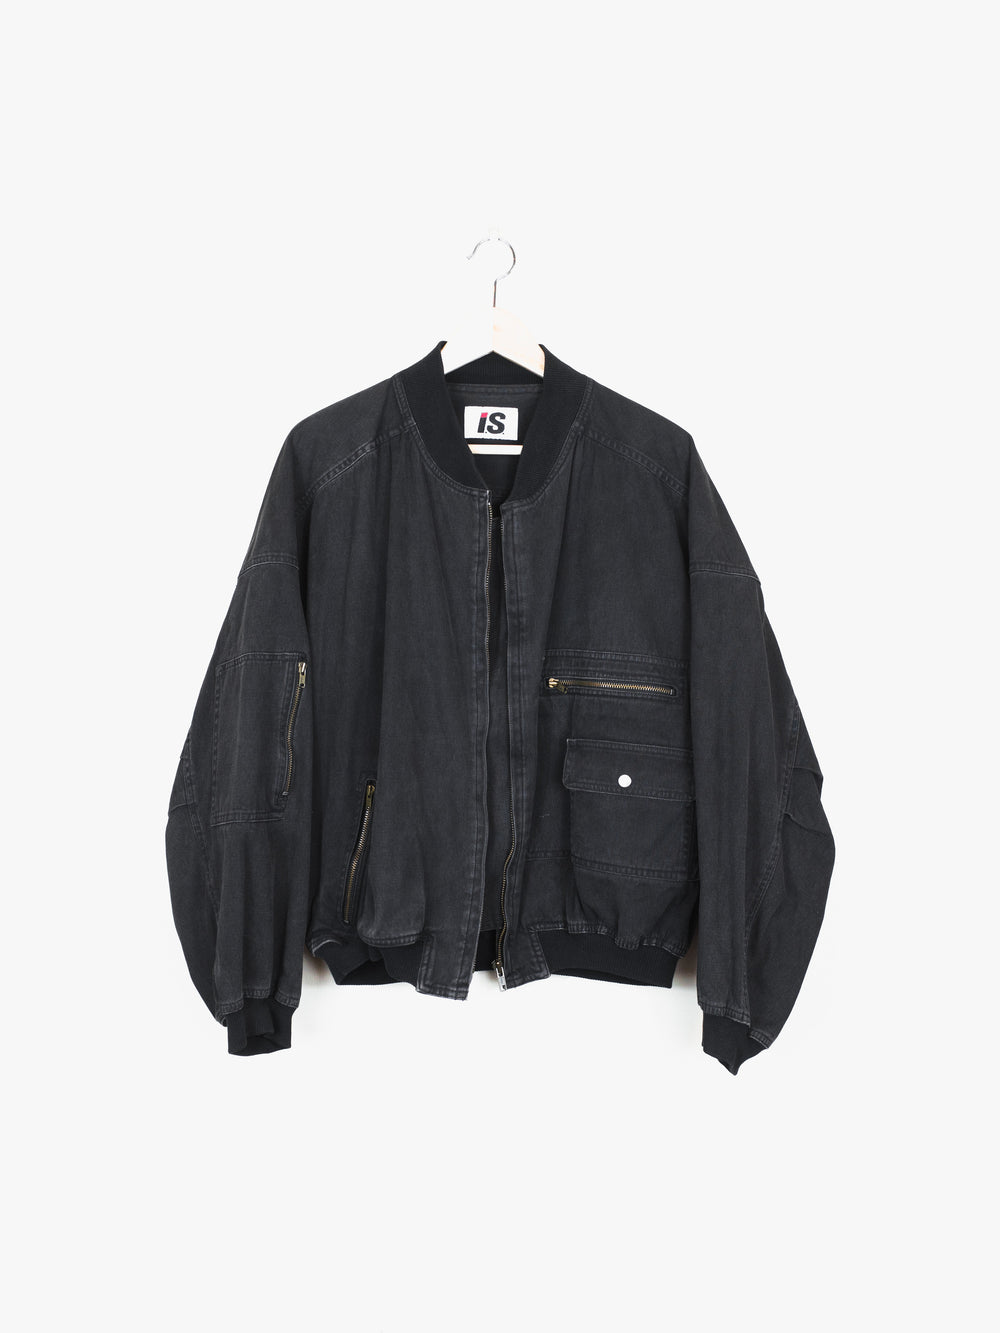 Issey Miyake Issey Sport IS Bomber